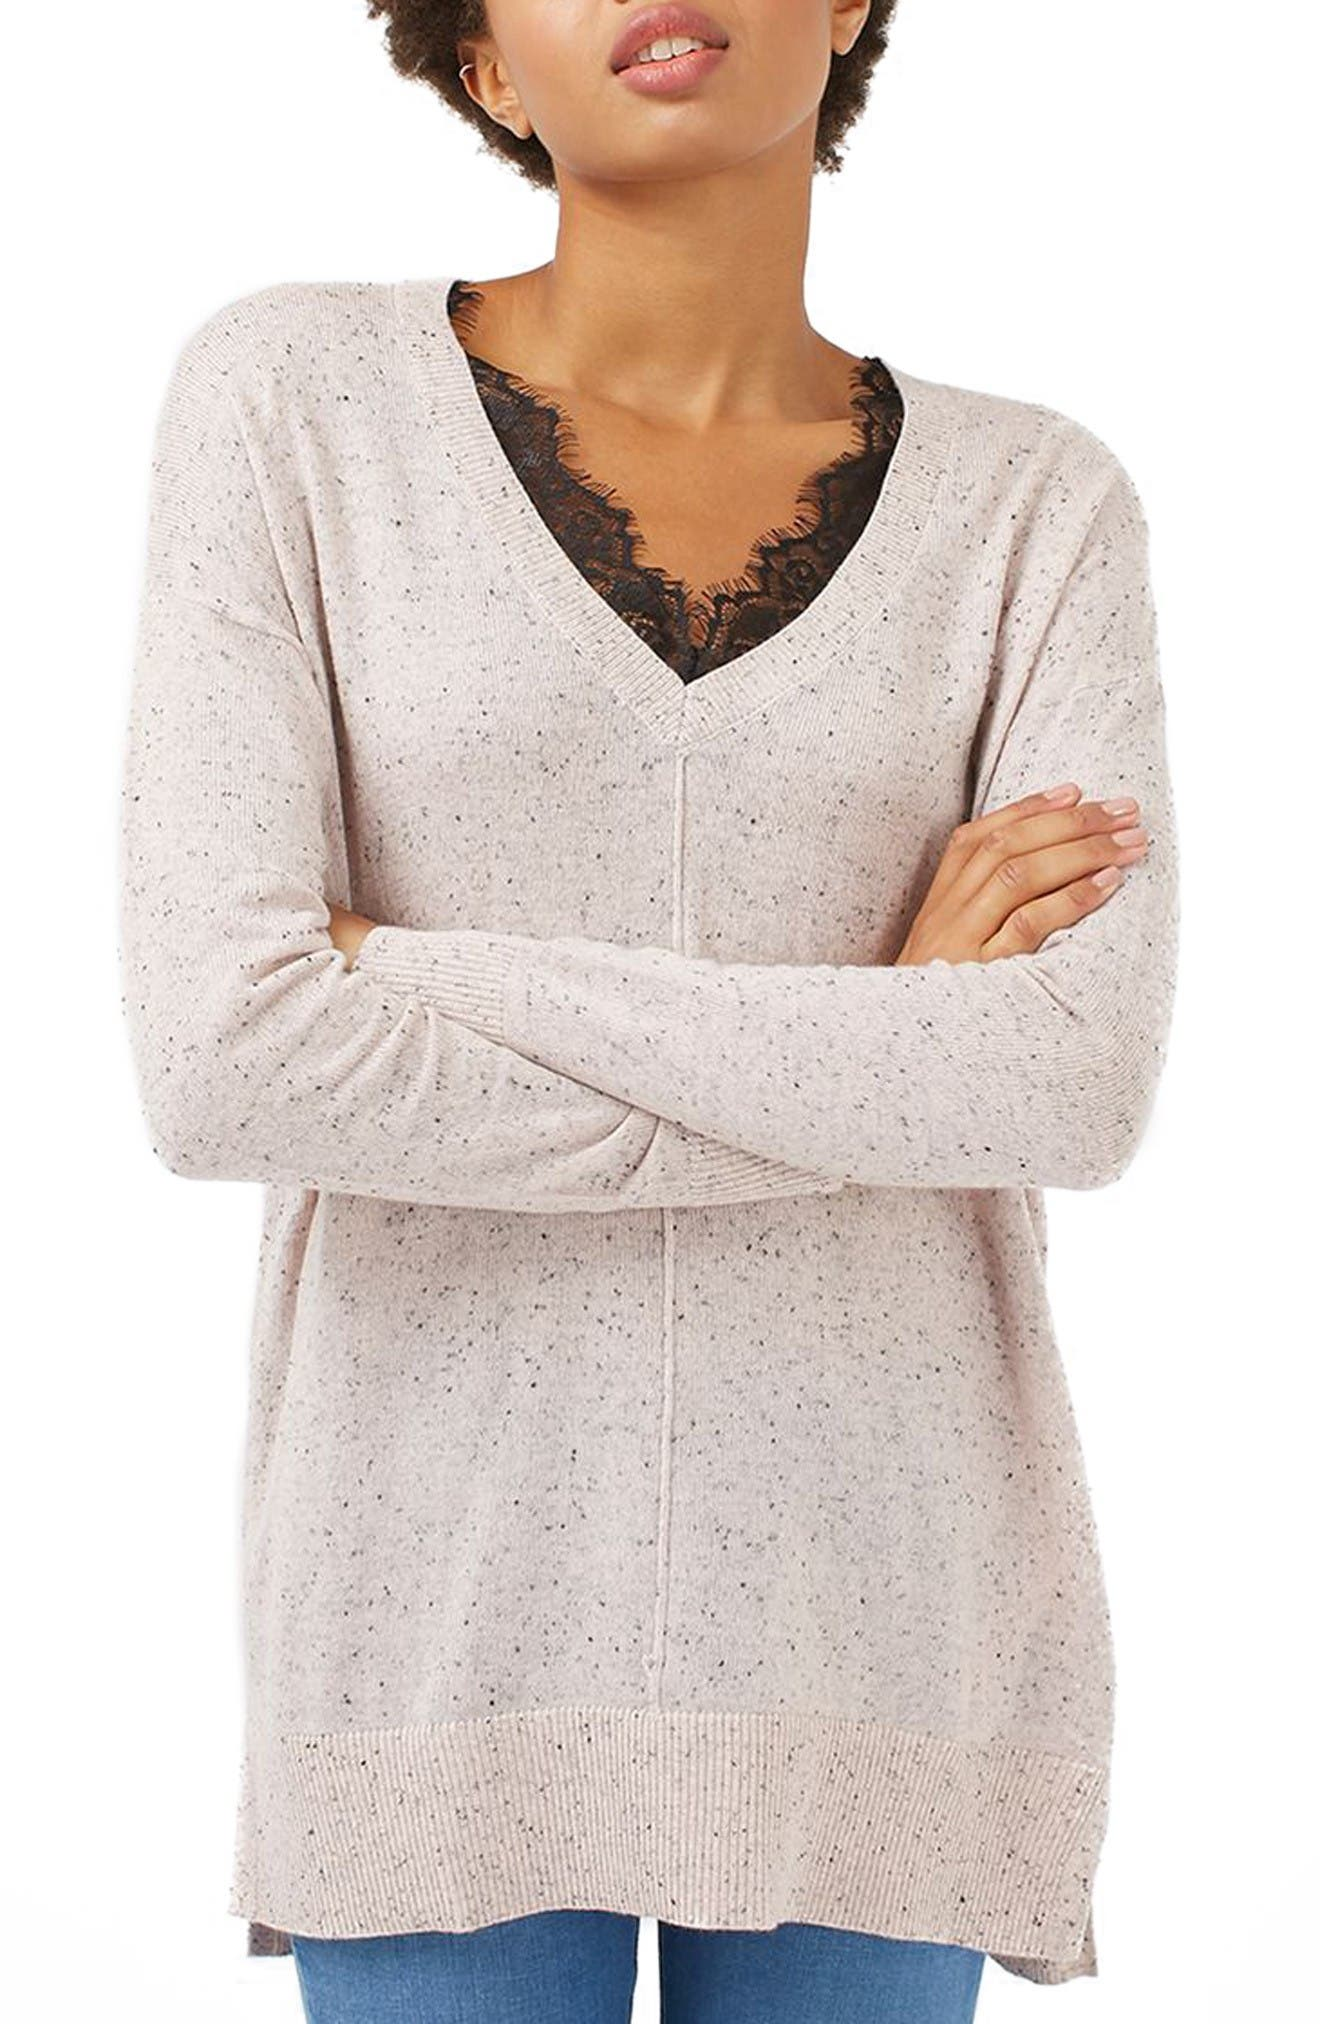 Topshop Lace V-Neck Sweater Tunic | Nordstrom